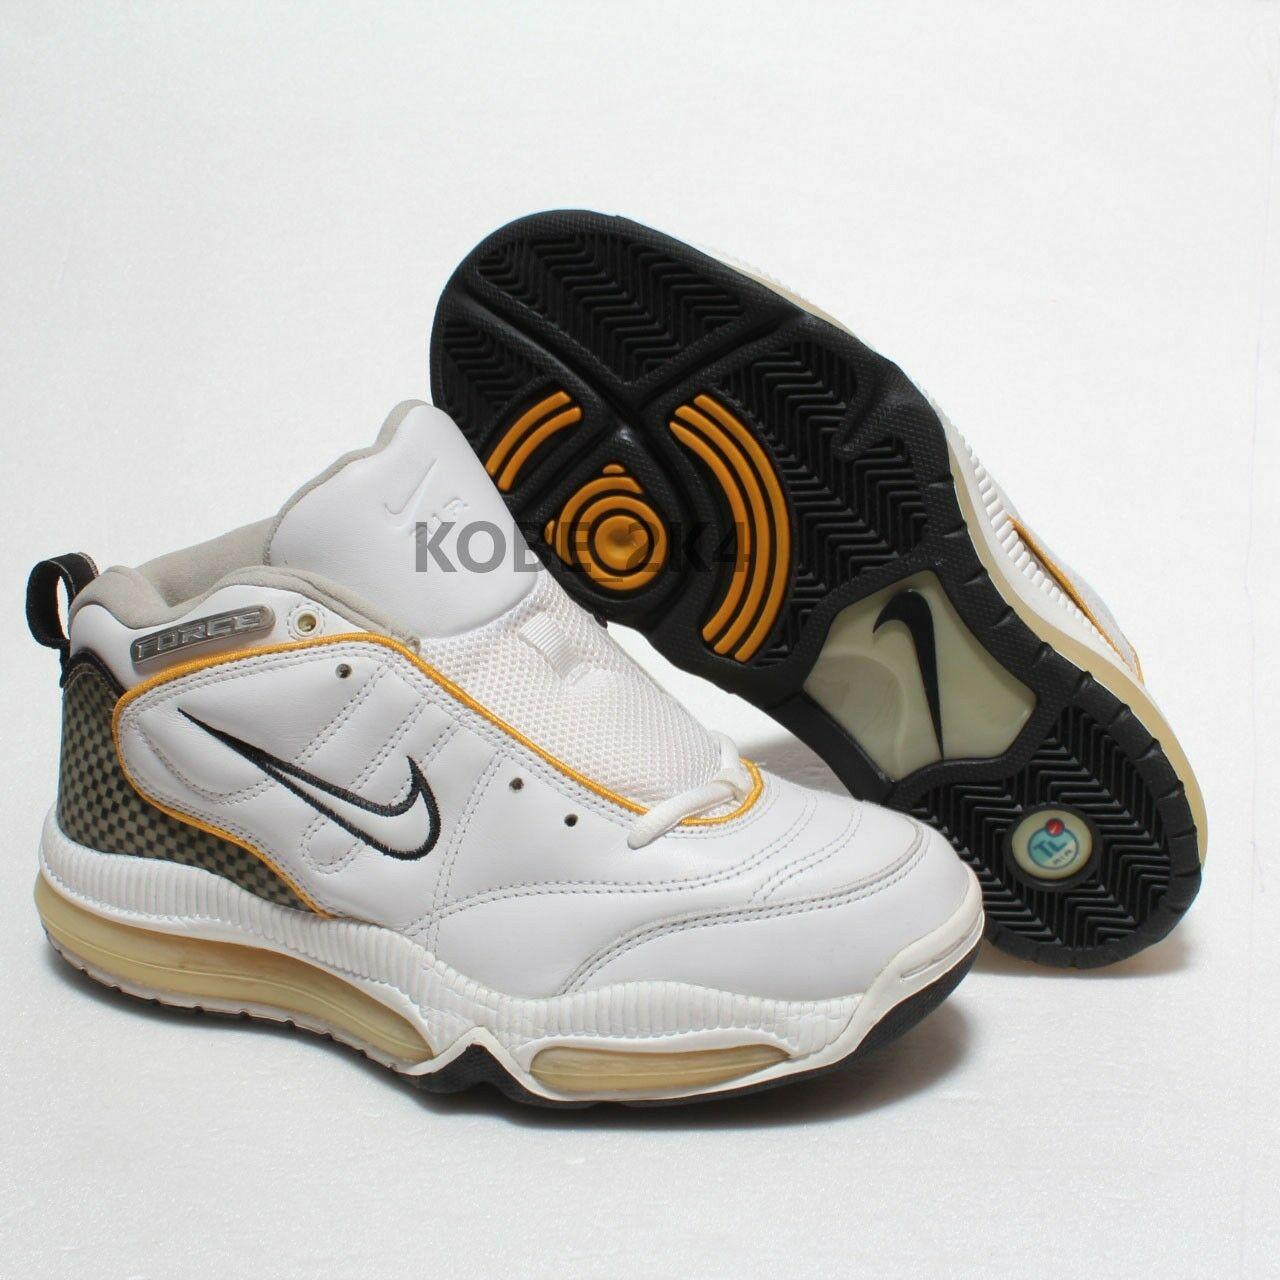 280 NEW VINTAGE NIKE AGGRESS FORCE AGASSI BASKETBALL GRAPHITE CARBON Uomo US